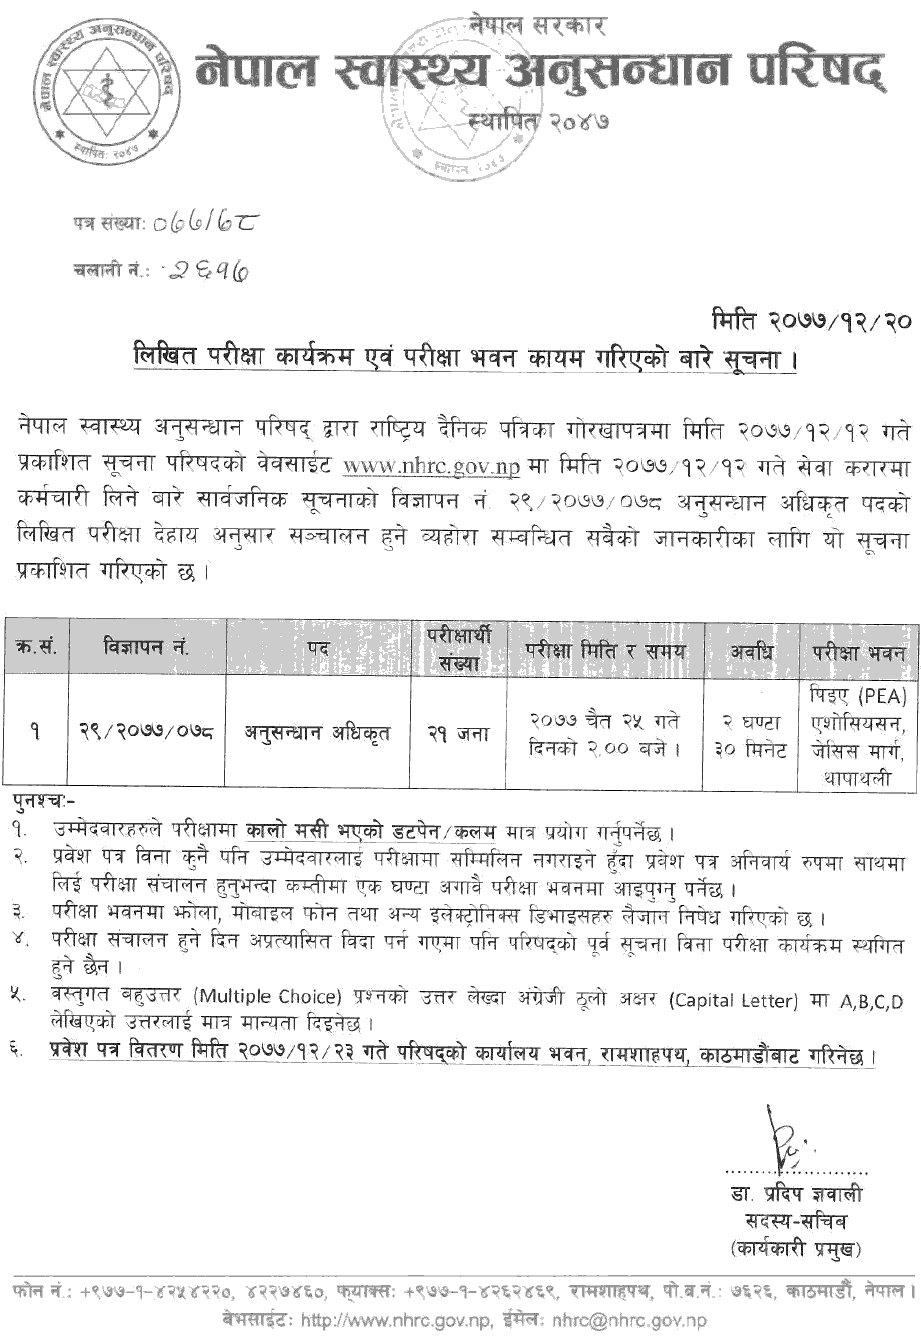 Nepal Health Research Council (NHRC) Officer Level Written Exam Schedule and Center